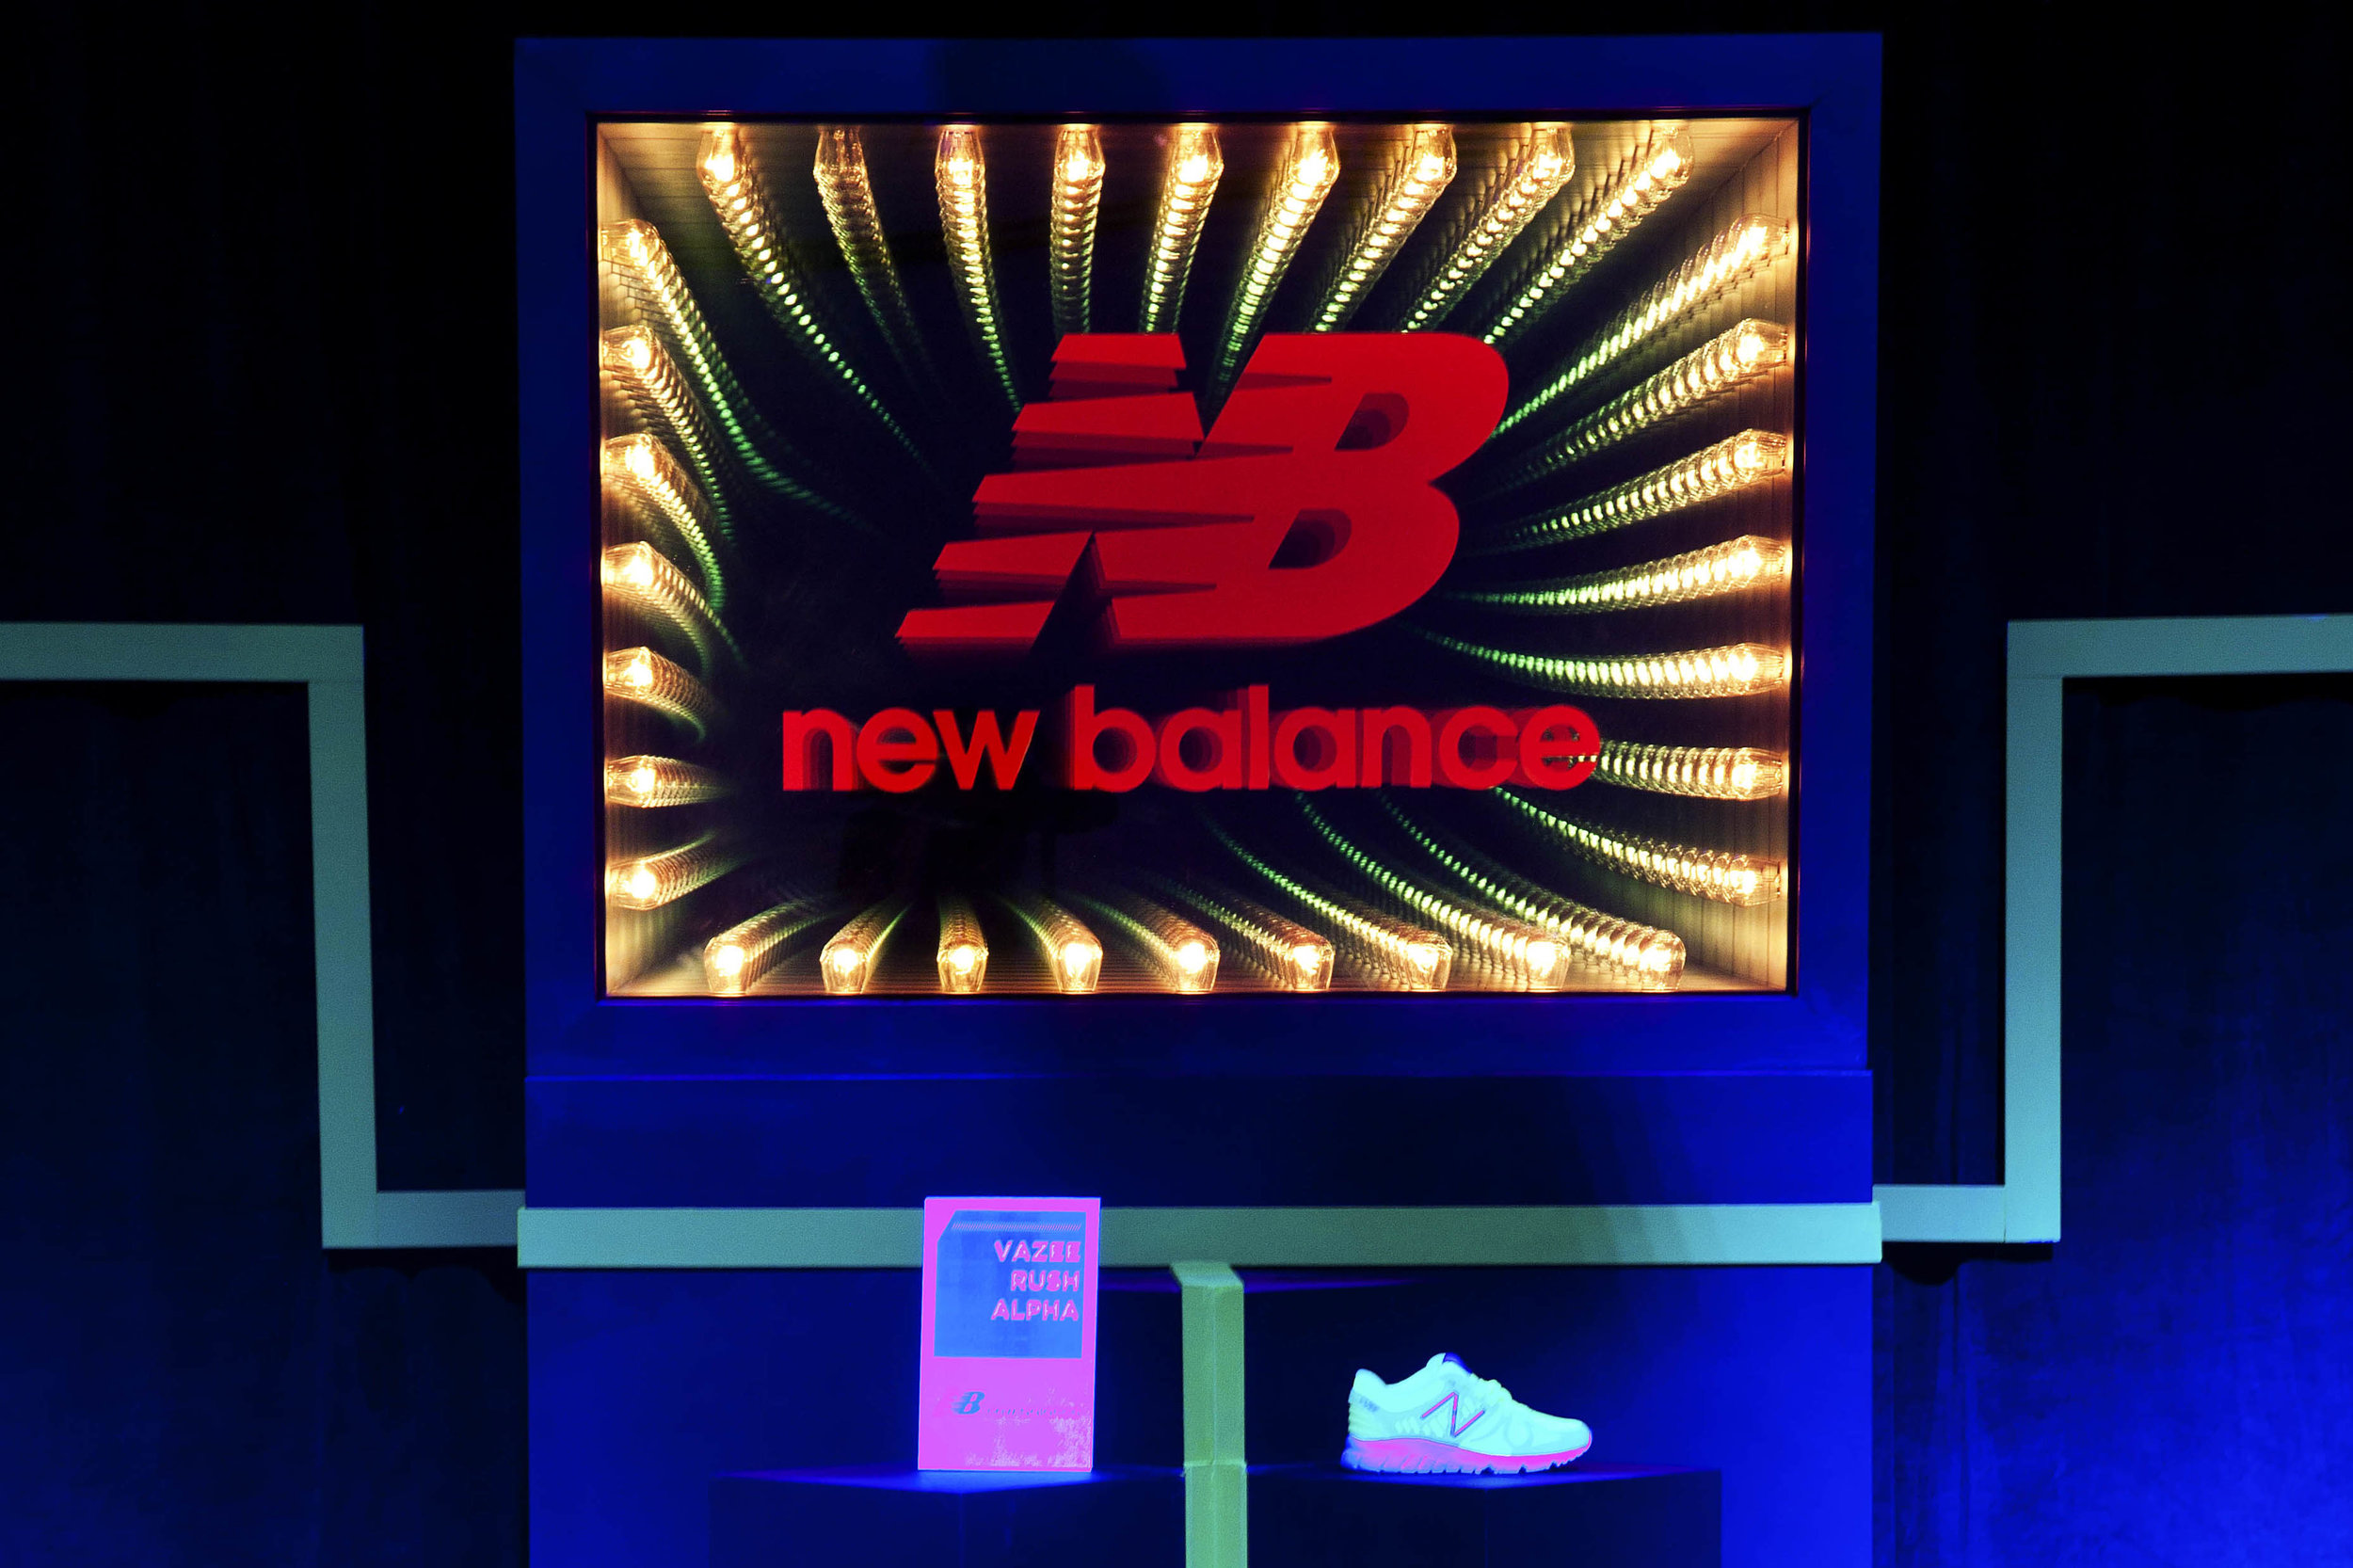 New Balance, Retail, Sneakers, Running, Influencers, Product Launch, Technology, Advancement, Shoes, Invisible North, Product, Brand, Experience, Experiential, Marketing, Production, Design, Strategy, Activation, Promotion, Agency